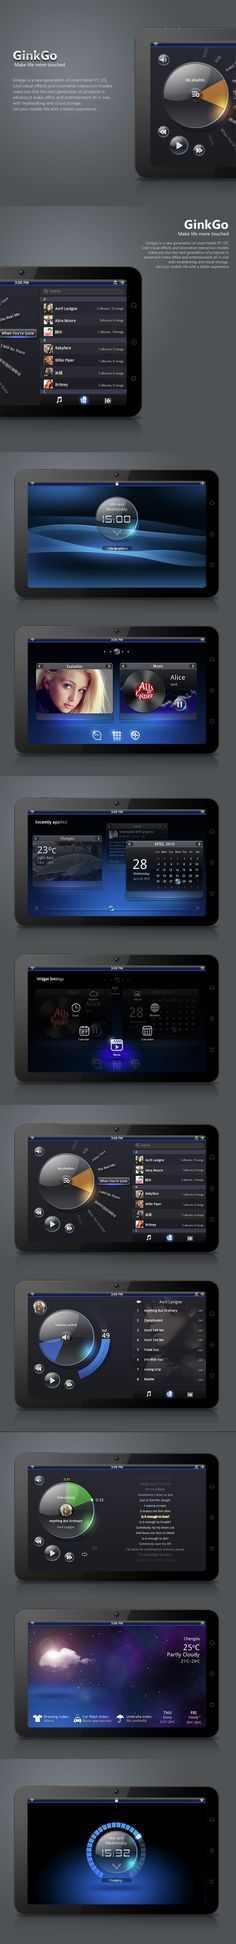 GinkGo *** Ginkgo is a new generation of smart tablet PC OS (concept). Cool visual effects and innovative interaction models make you live the next generation of products in advance. It make office and entertainment all in one multitasking and cloud storage.